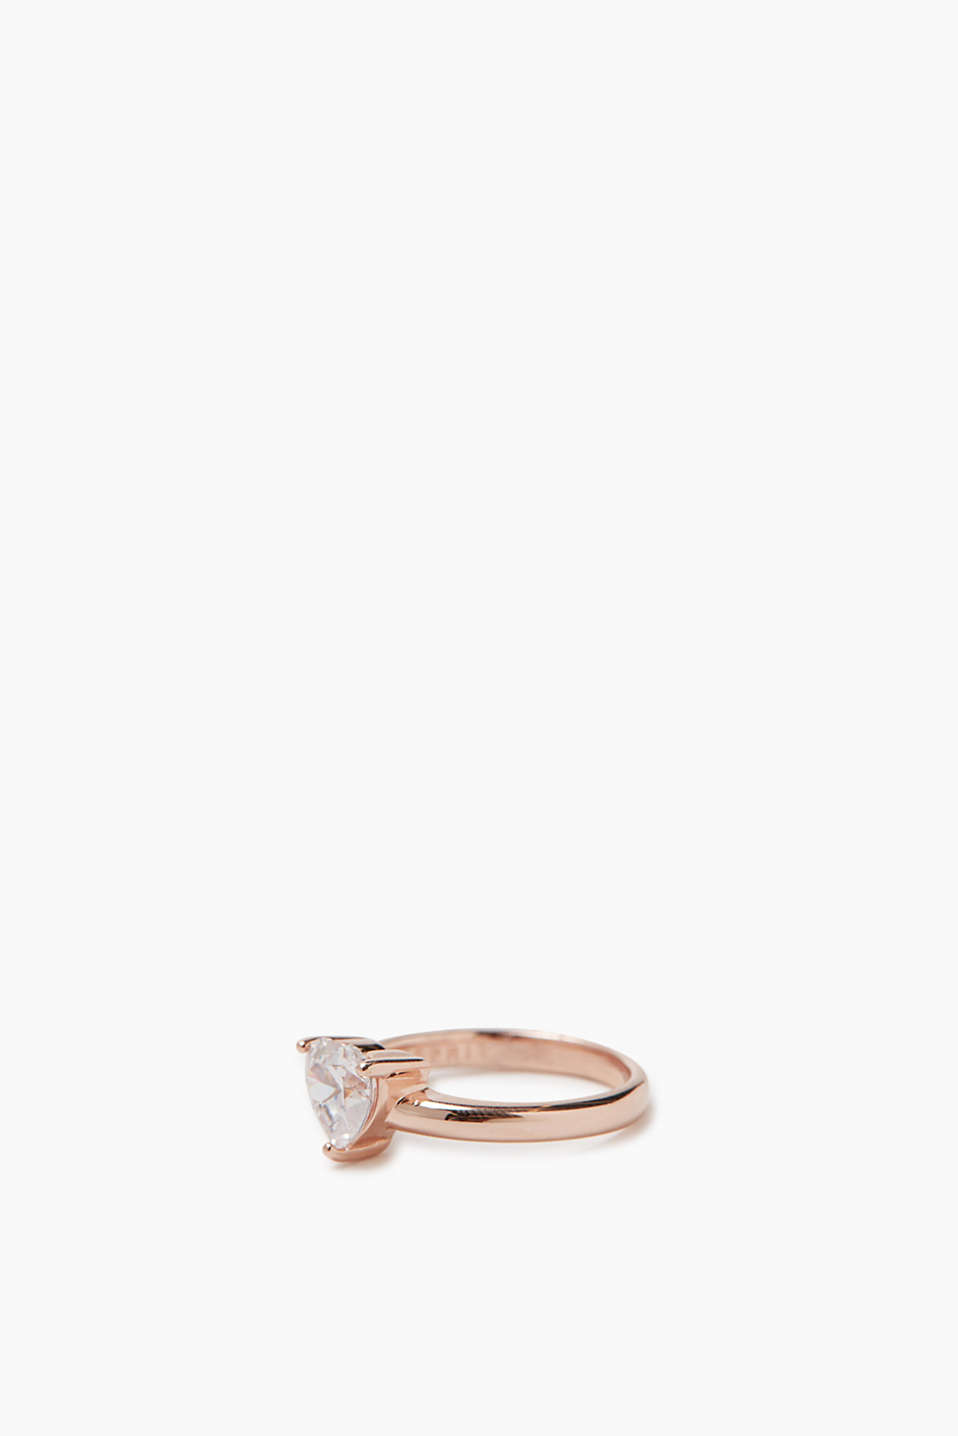 Ring with heart-shaped zirconias